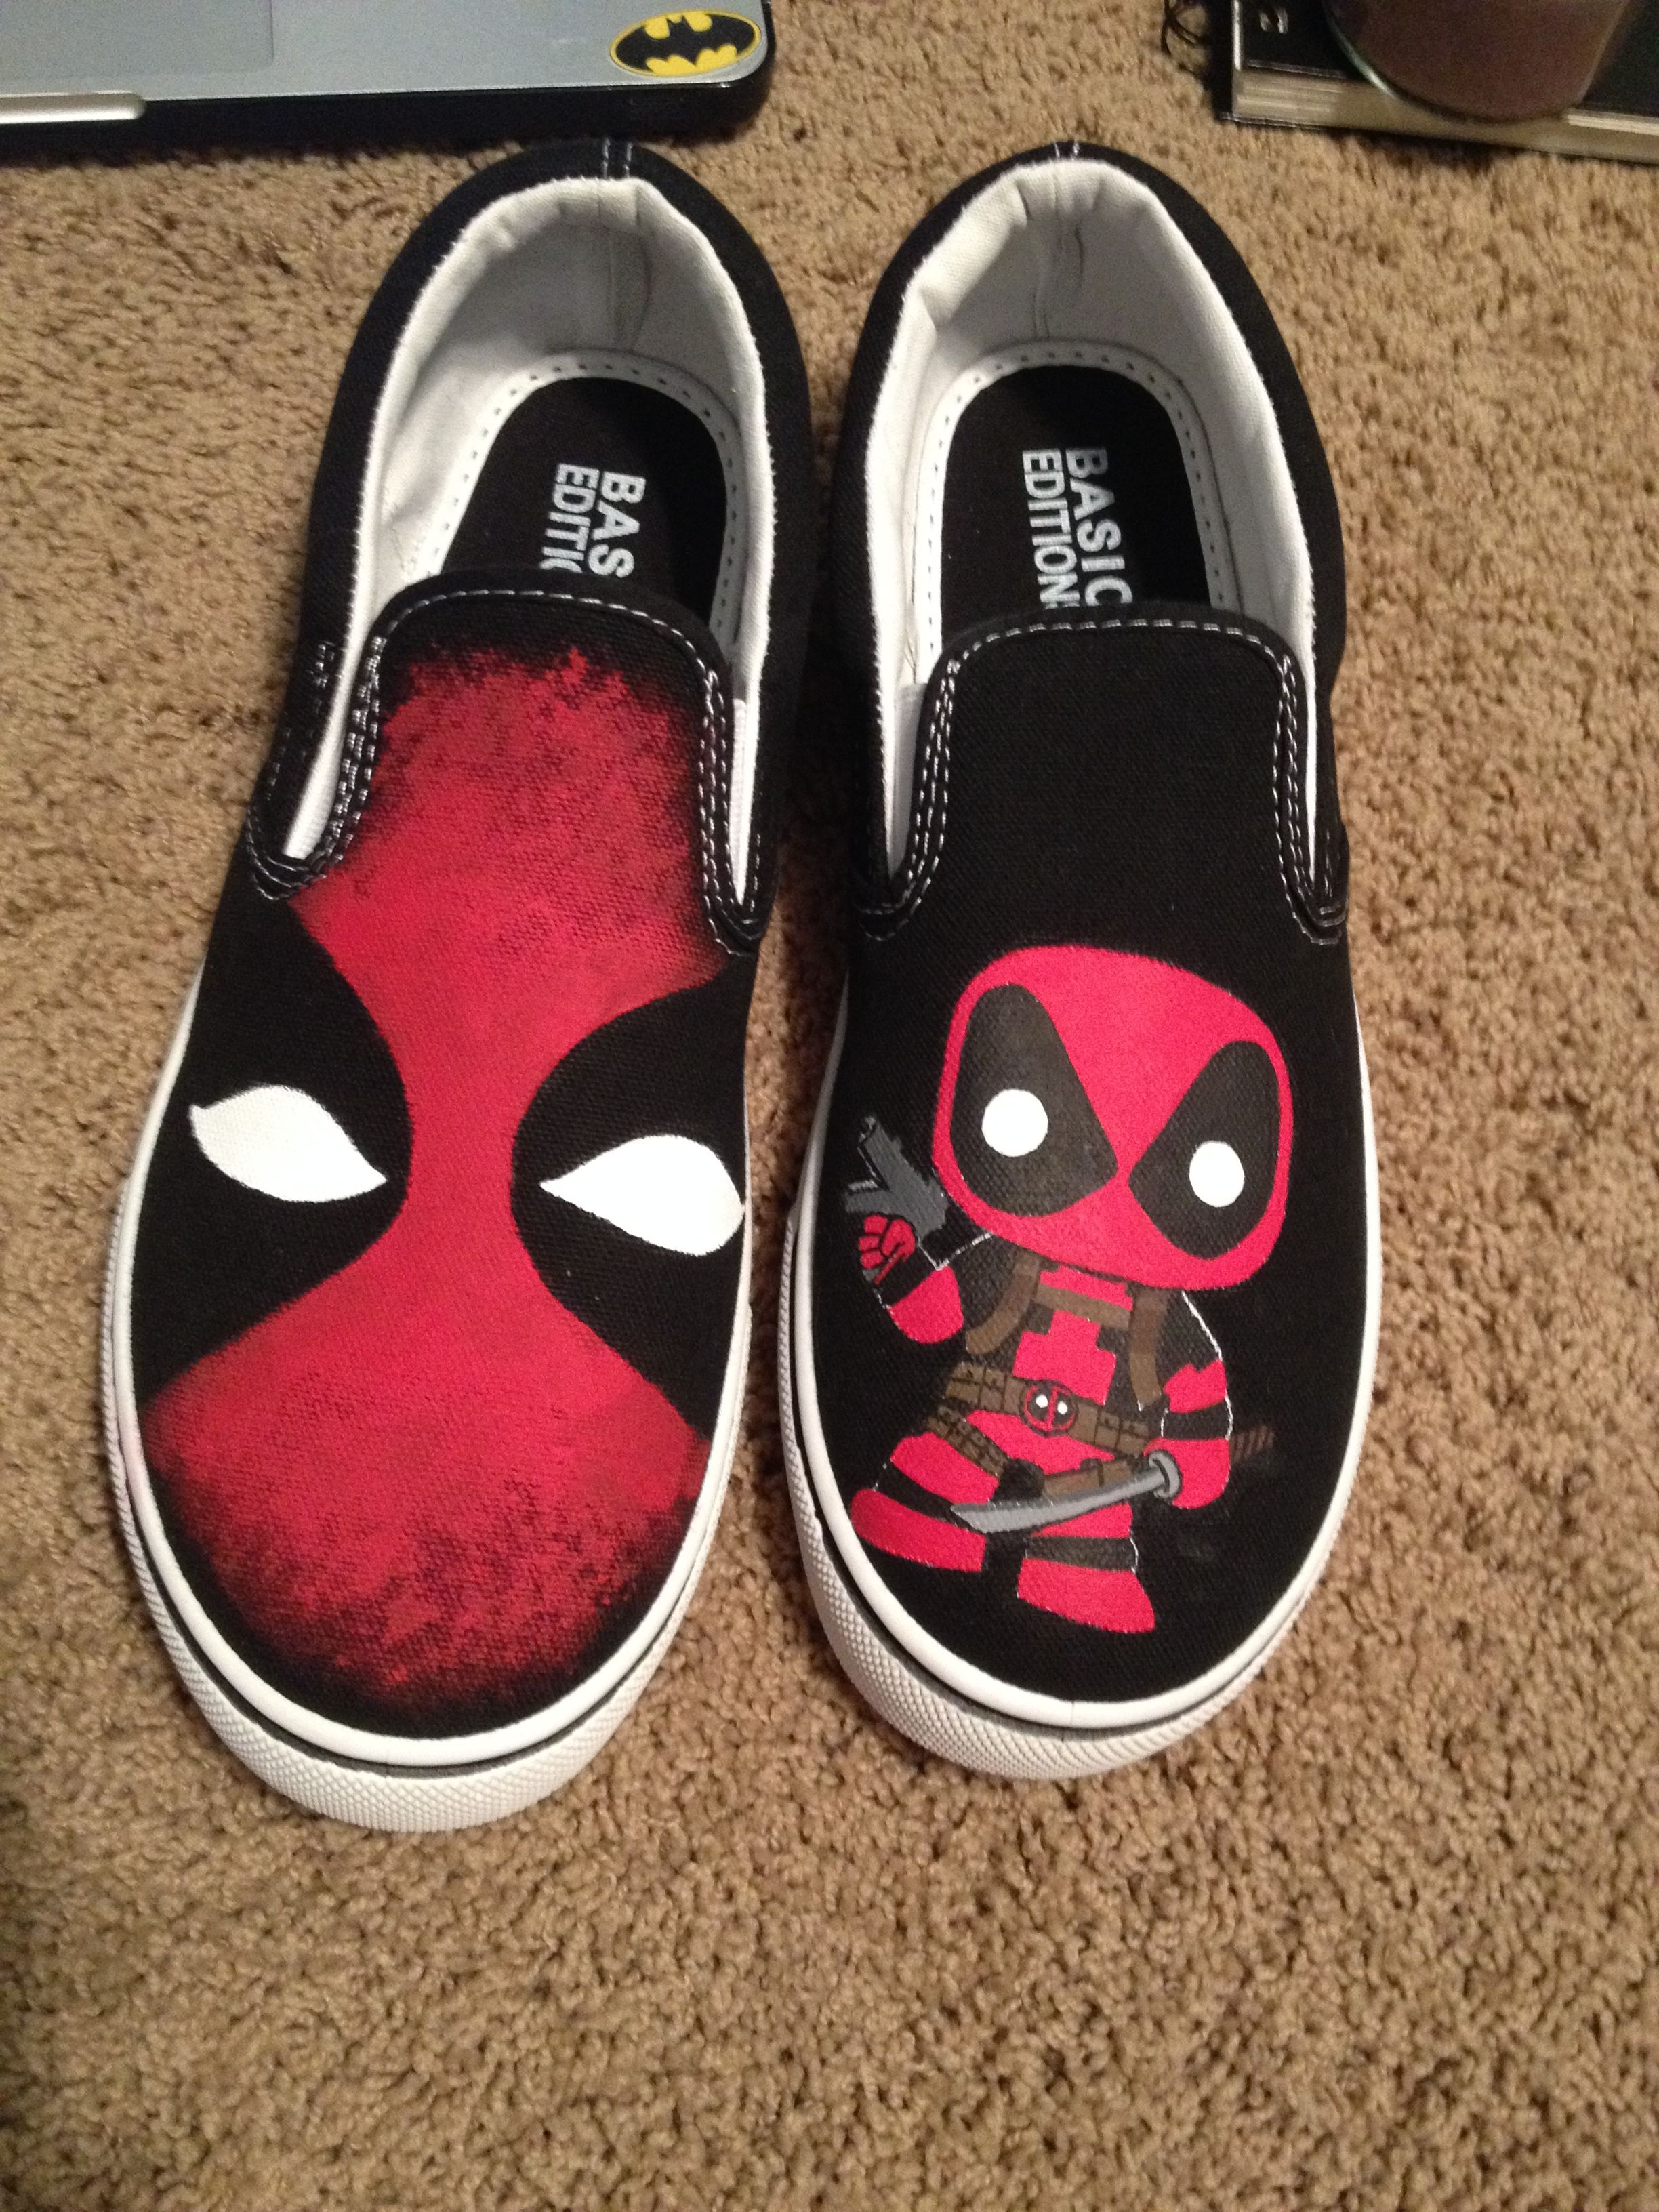 5b3b5579c86 Deadpool kind of counts as pure awesomeness right !  Etsy.com shop Artscribbles